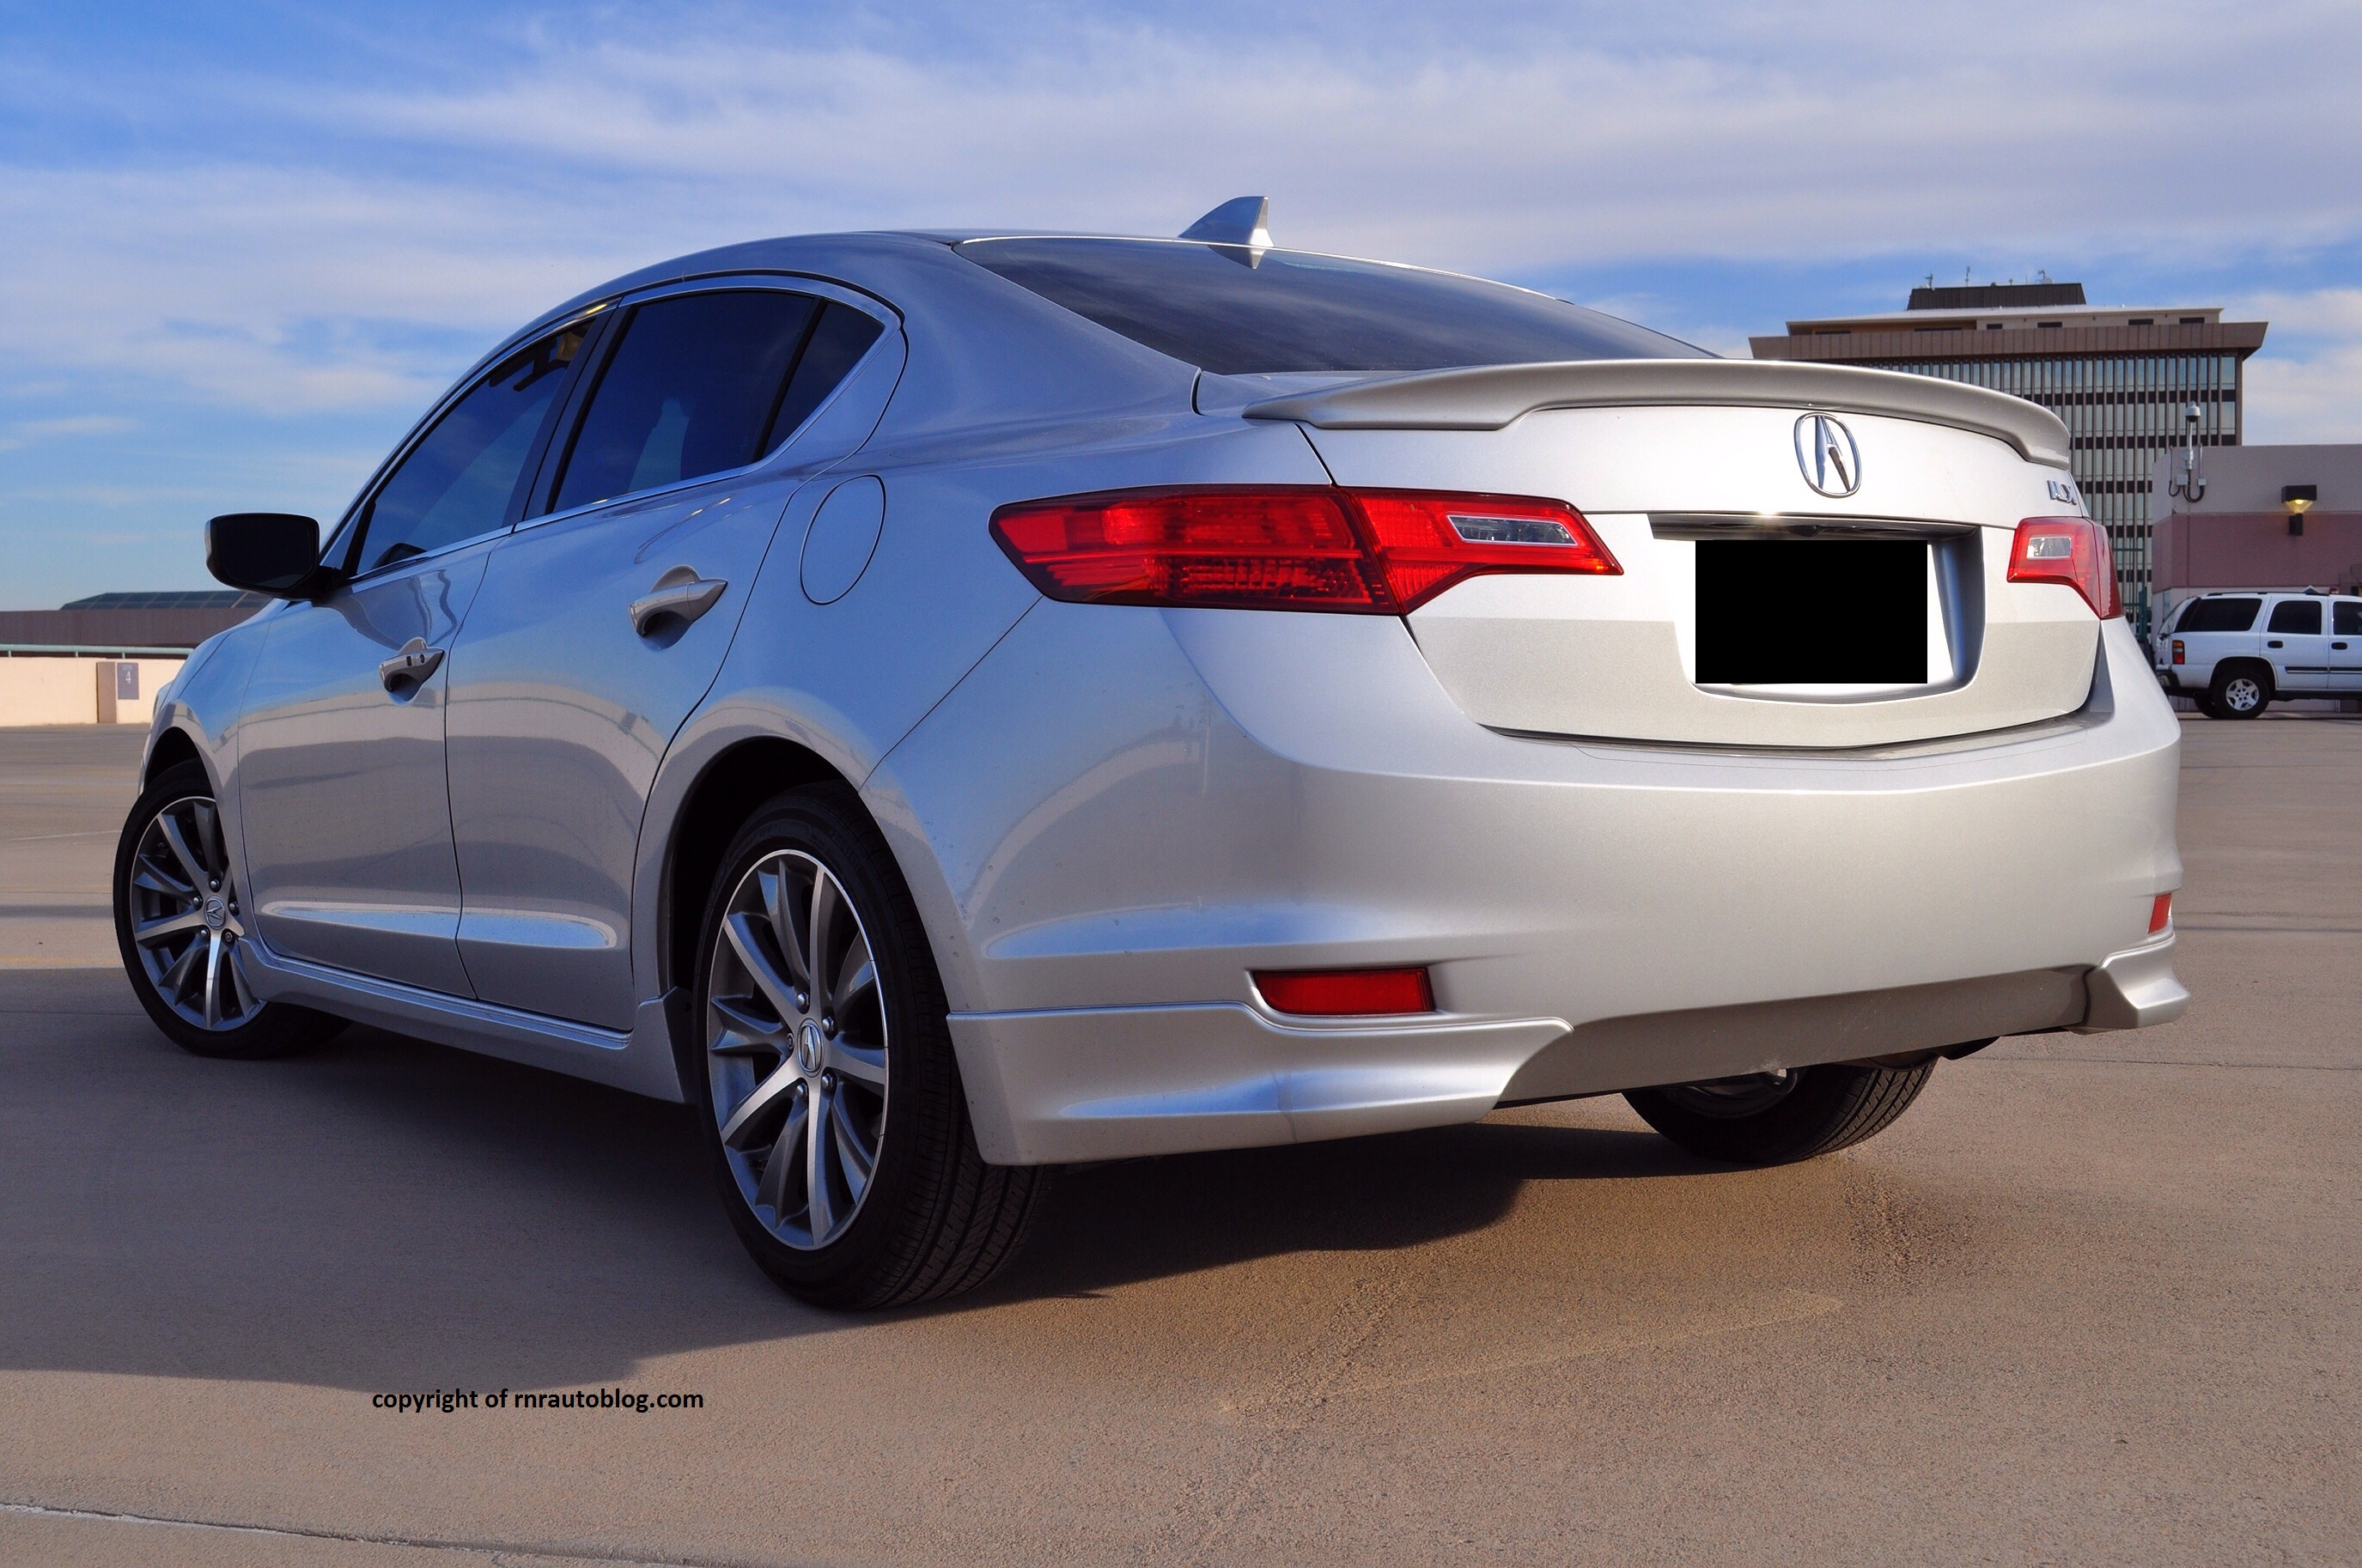 2013 acura ilx 2 4 review rnr automotive blog. Black Bedroom Furniture Sets. Home Design Ideas